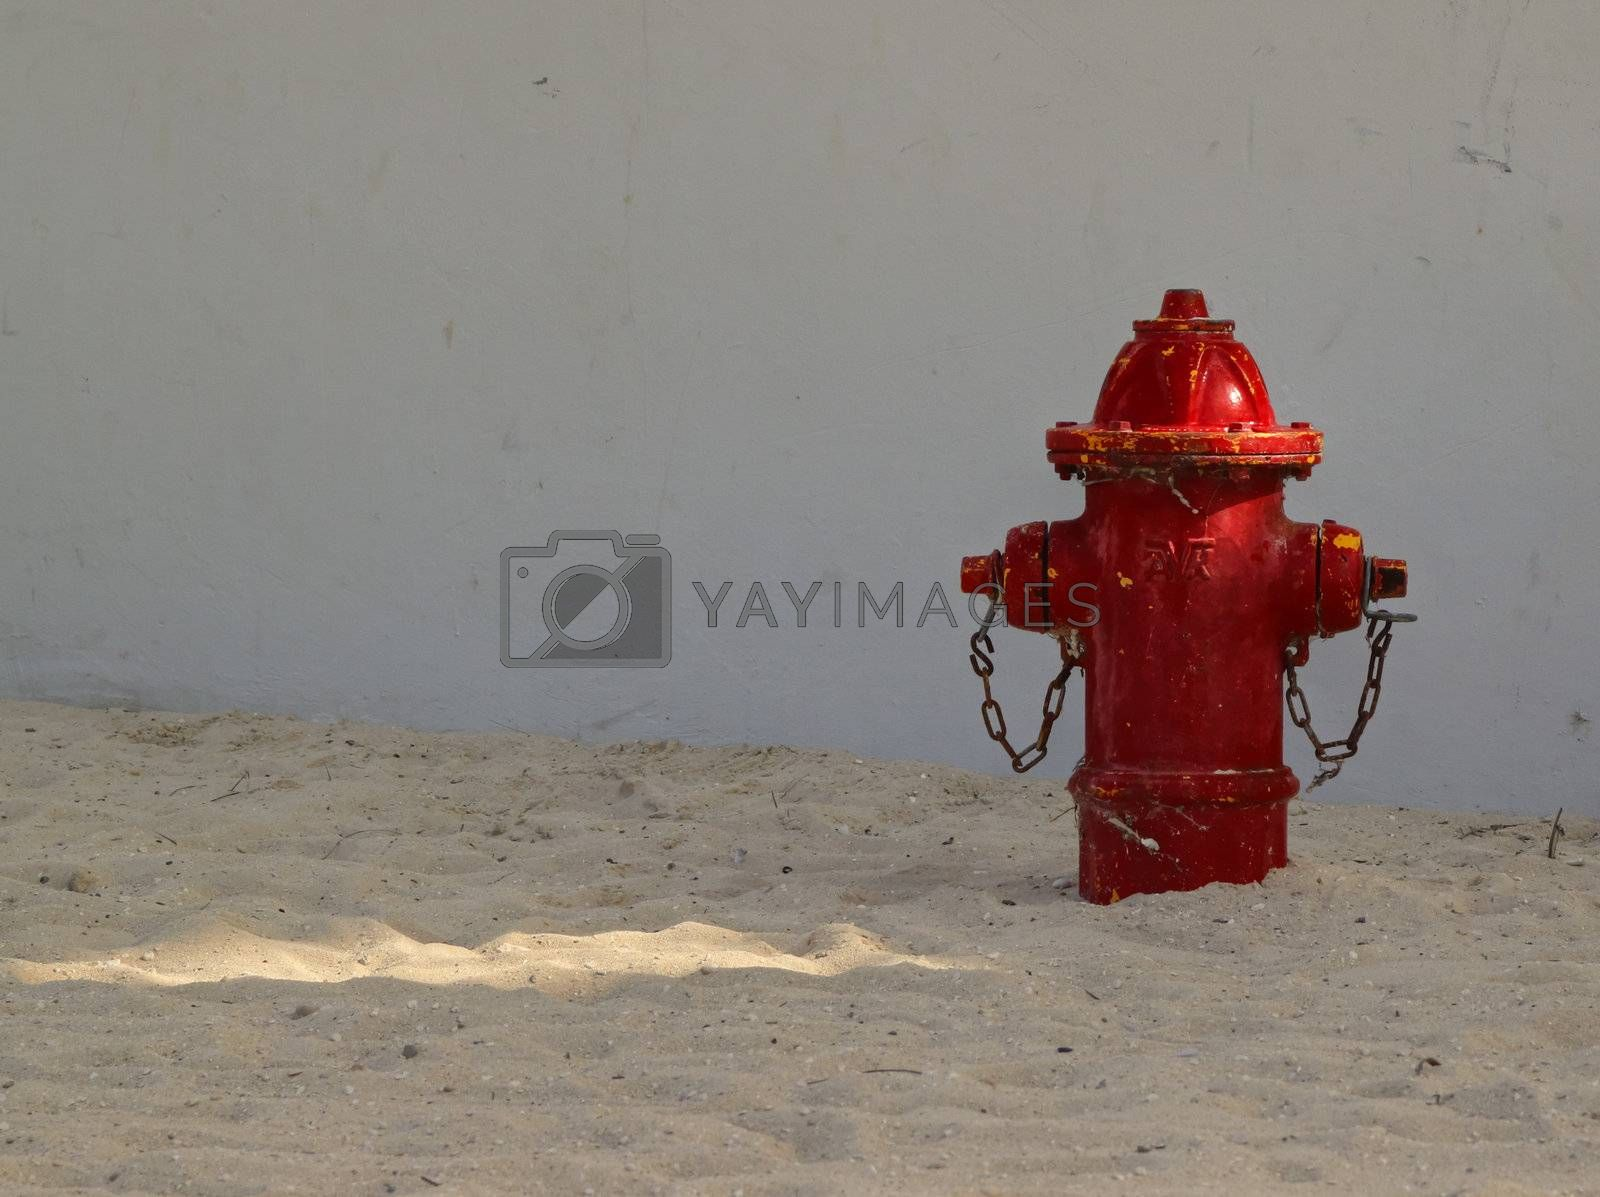 Right side view of red fire hydrant on a sandy beach